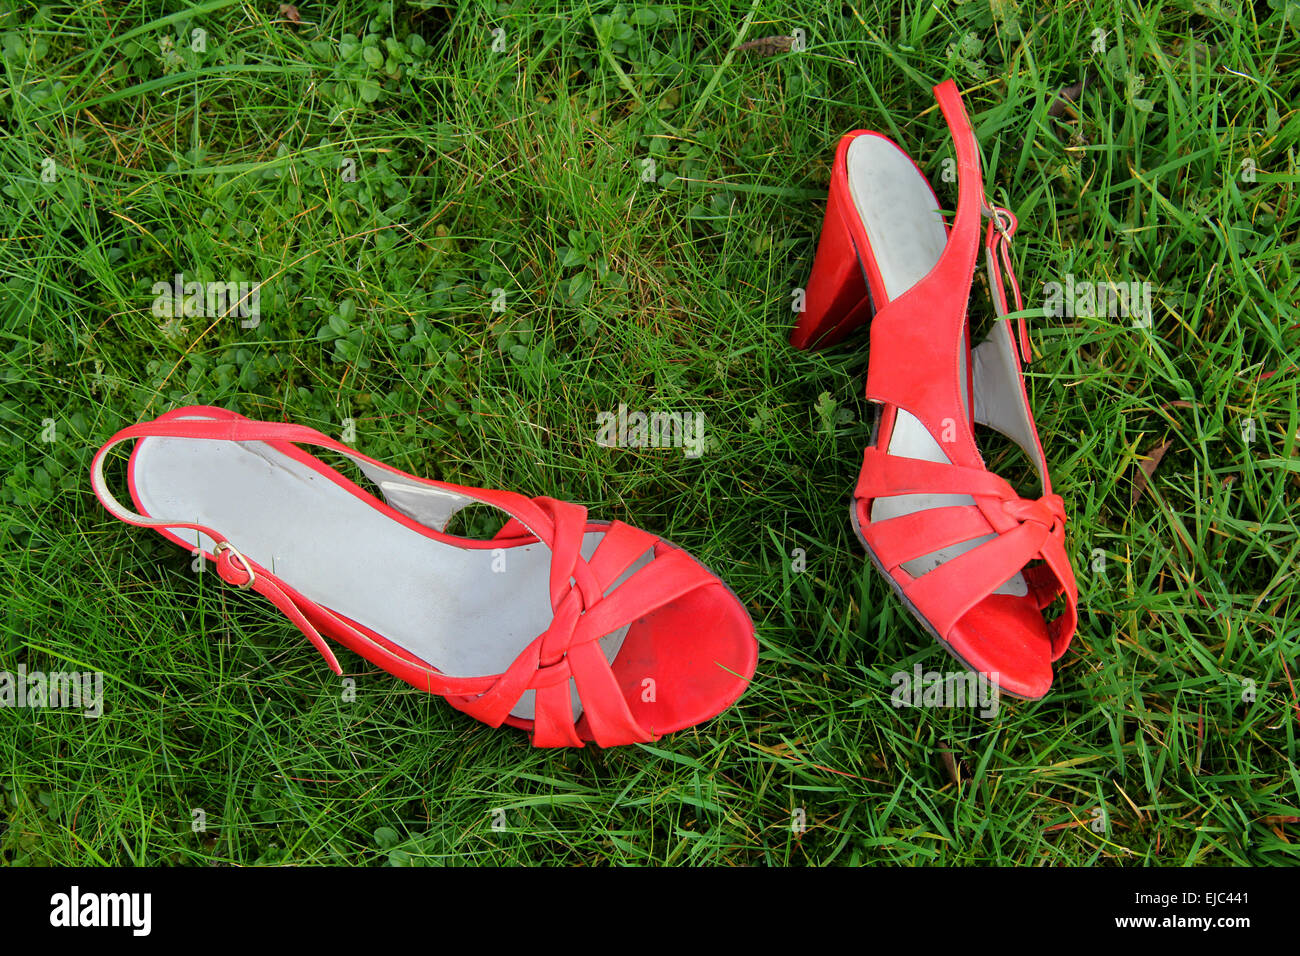 Red High Heels - Stock Image